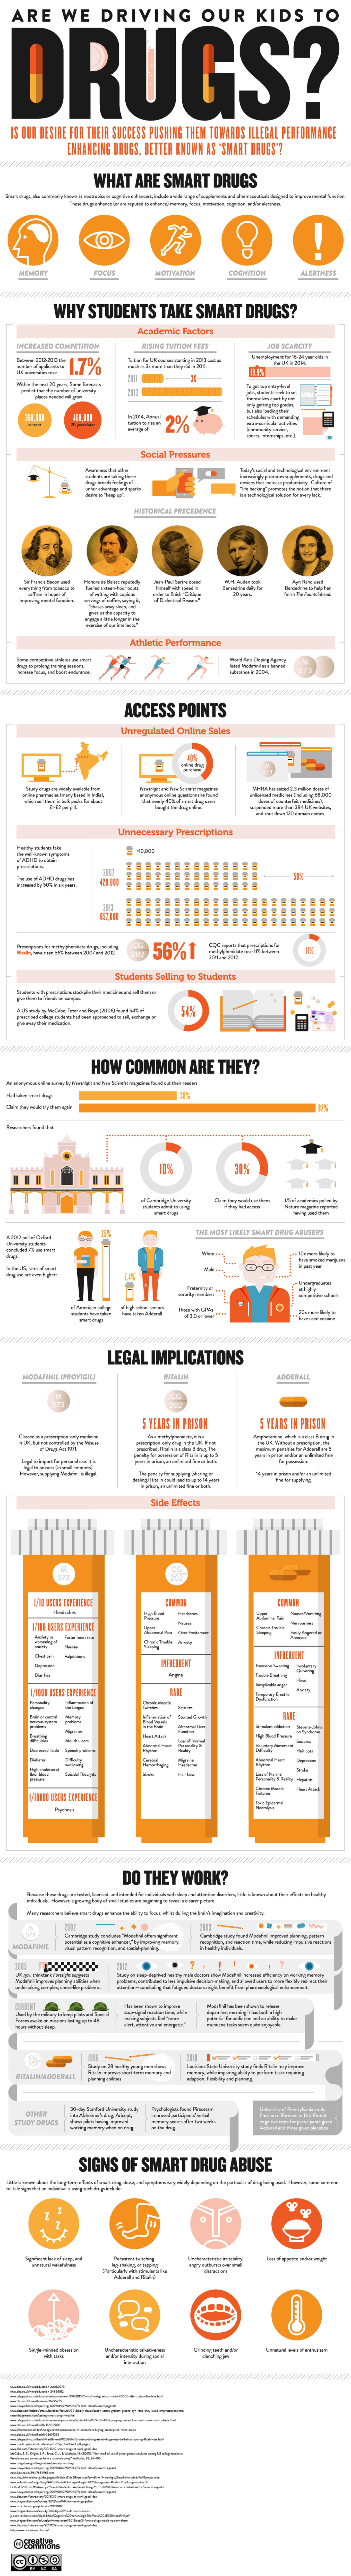 Are we Driving Our Kids to Drugs? Infographic